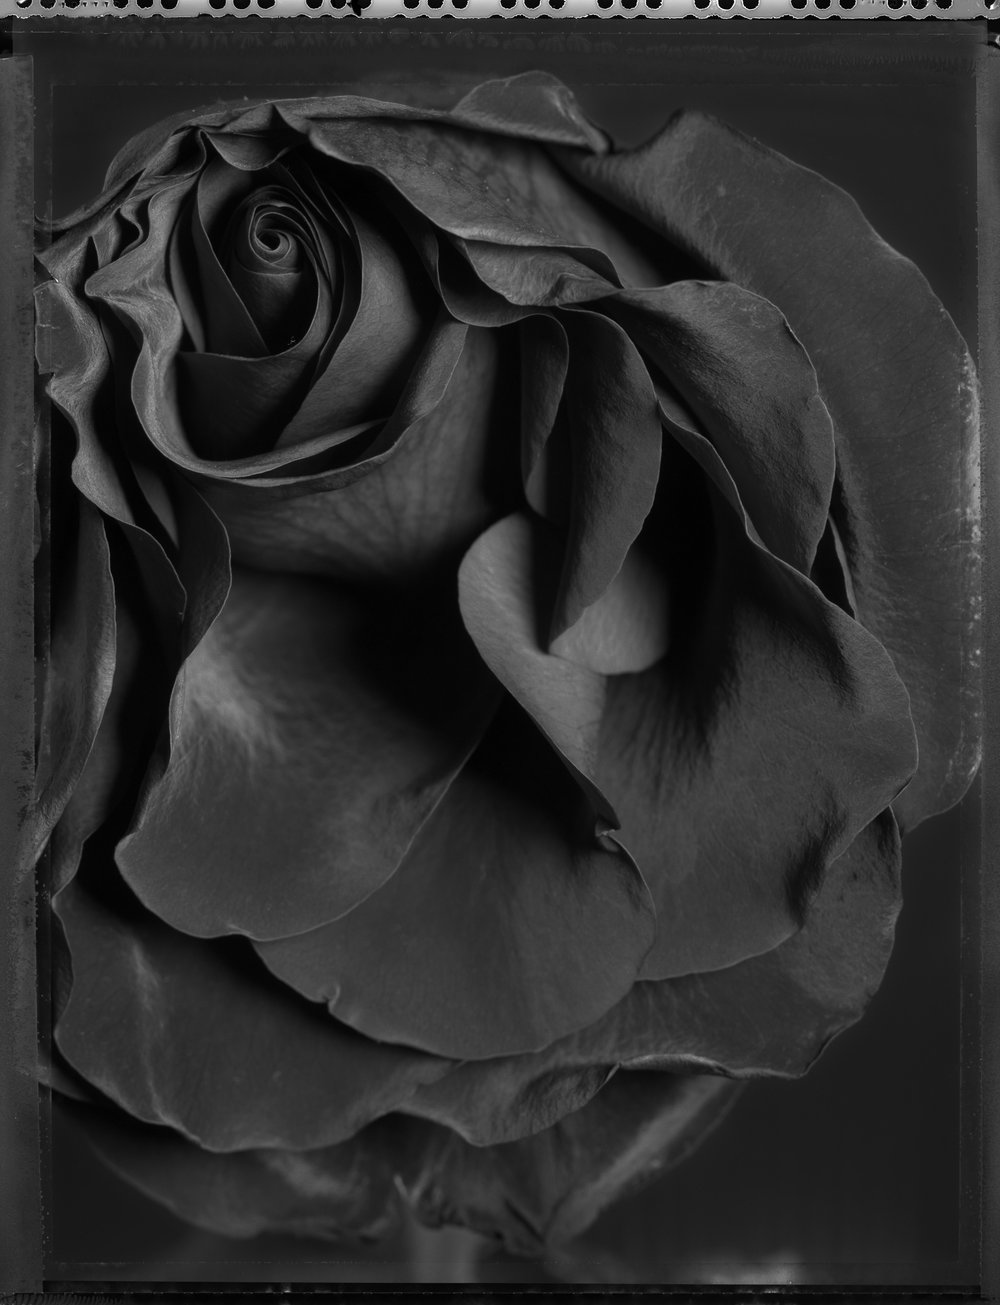 cabbage-rose-layers131.jpg